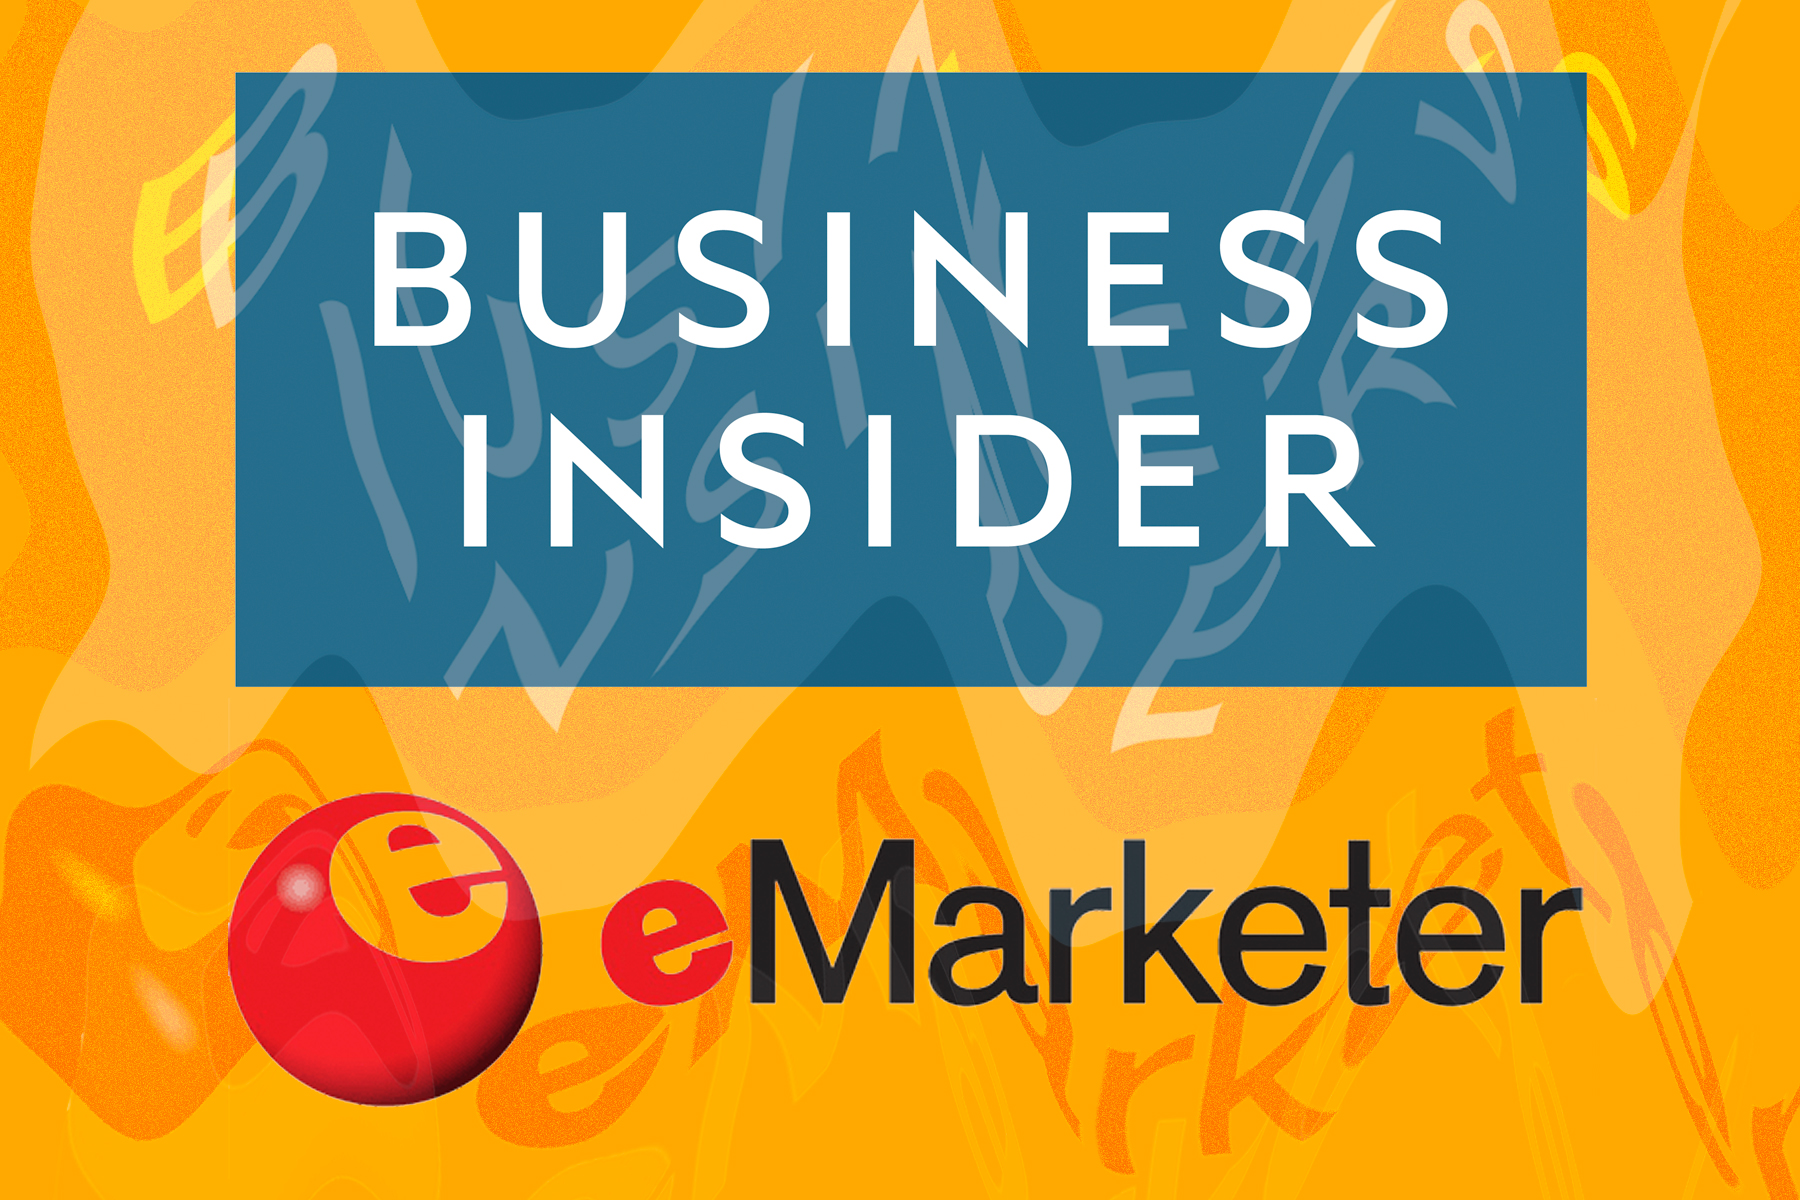 Business Insider and eMarketer combine into one intelligence company for the first time since Axel Springer acquired them, as they plan to invest in more reporting and products around new industries to cater to more corporate clients.